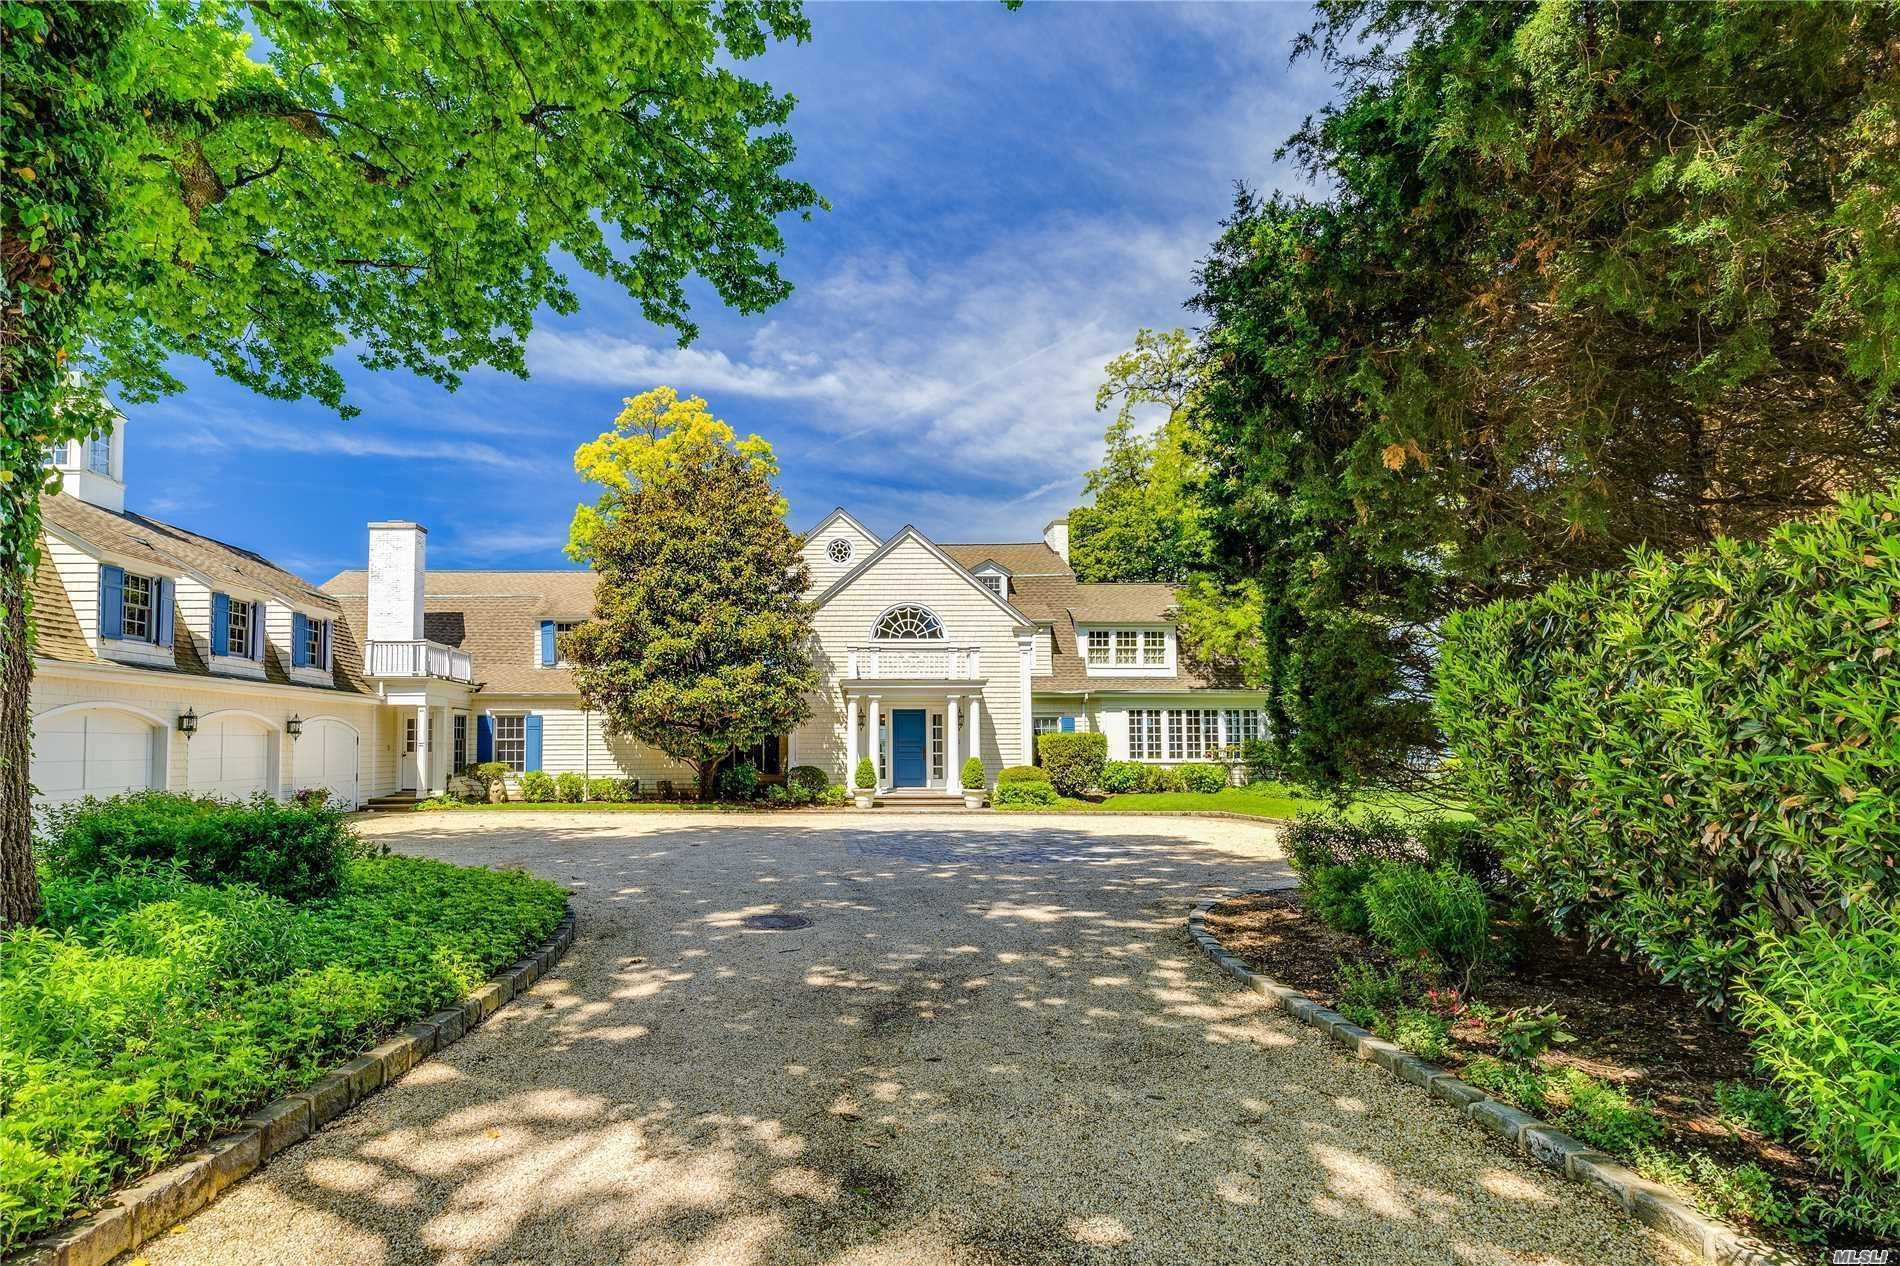 One Of The Finest Waterfront Homes In Sands Point , Hampton Style Colonial, 8317 Sq Ft Home, On 1.75 Acres, Offering Water Views From Virtually Every Room. Gourmet EIK Kitchen, 2 Dens, Classic Interior, Beautiful Views Of The Long Island sound, 3 car garage, Waterside 25X50 Heated Pool, Generator, World Class Dock. Featured On Many Television Shows & Movies! See Attachments for all extra amenities .....Won't Last! 3D tour attached to the listing.